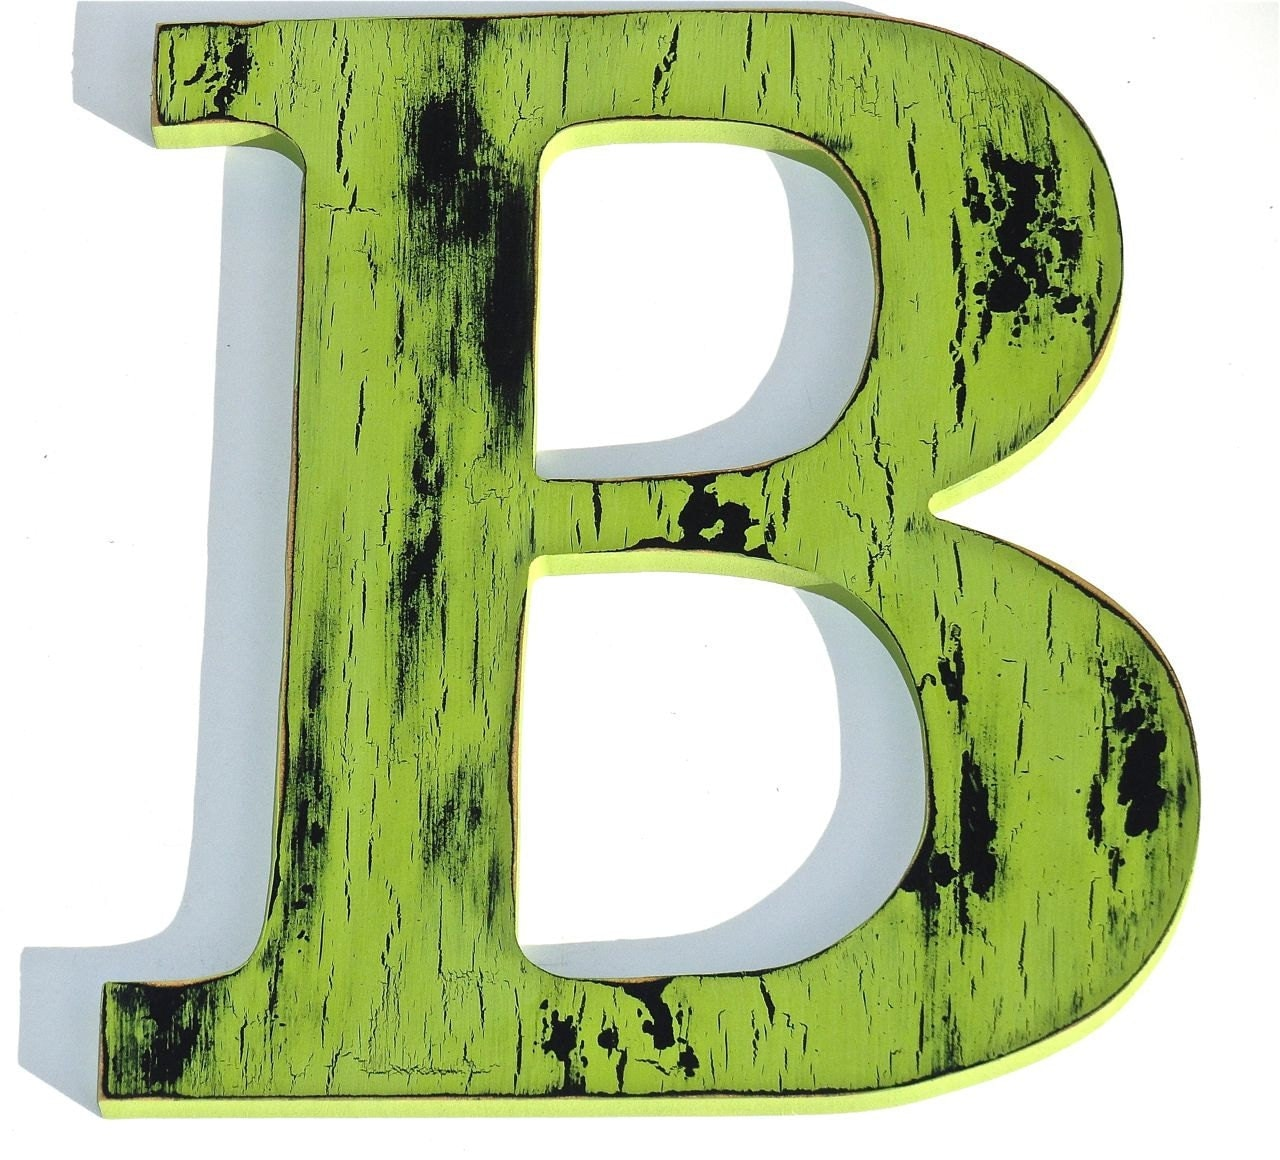 Wall Decor Letter B : Wall decor wooden letter b in green by holesinthewood on etsy